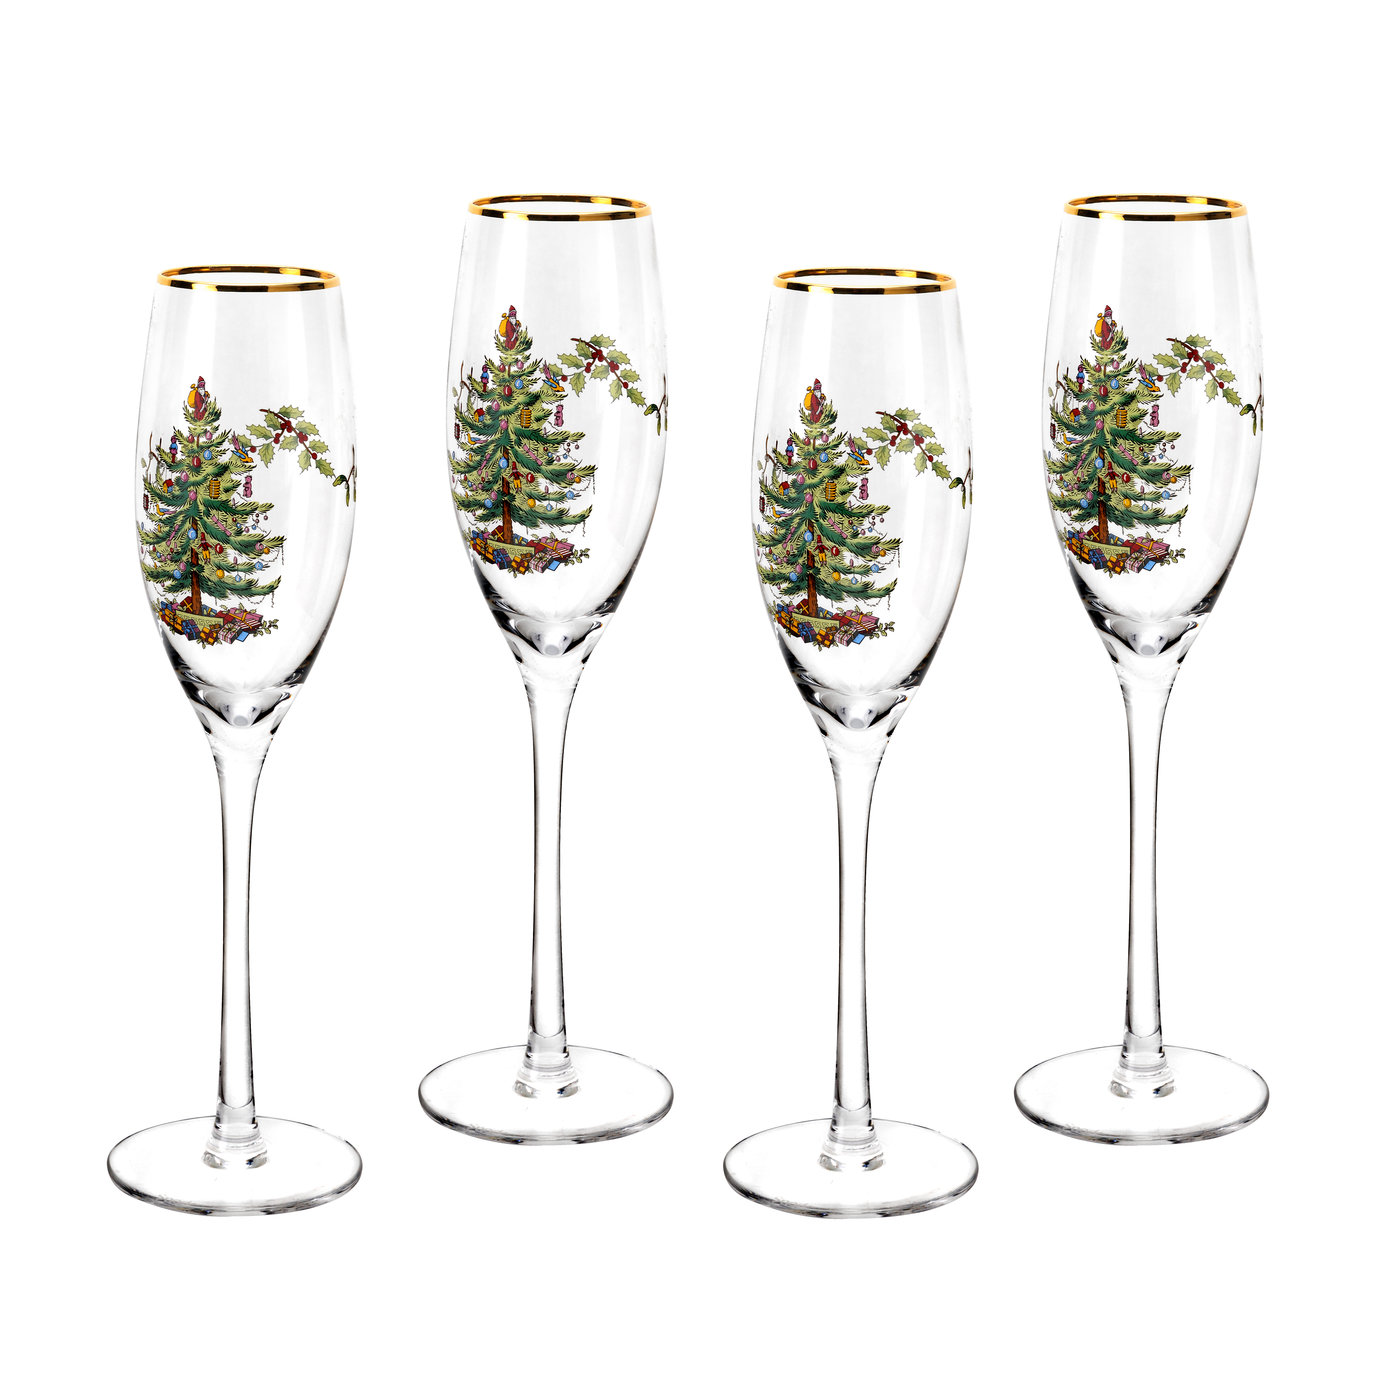 Spode Christmas Tree Champagne Fluted Glasses Set of 4 image number 0